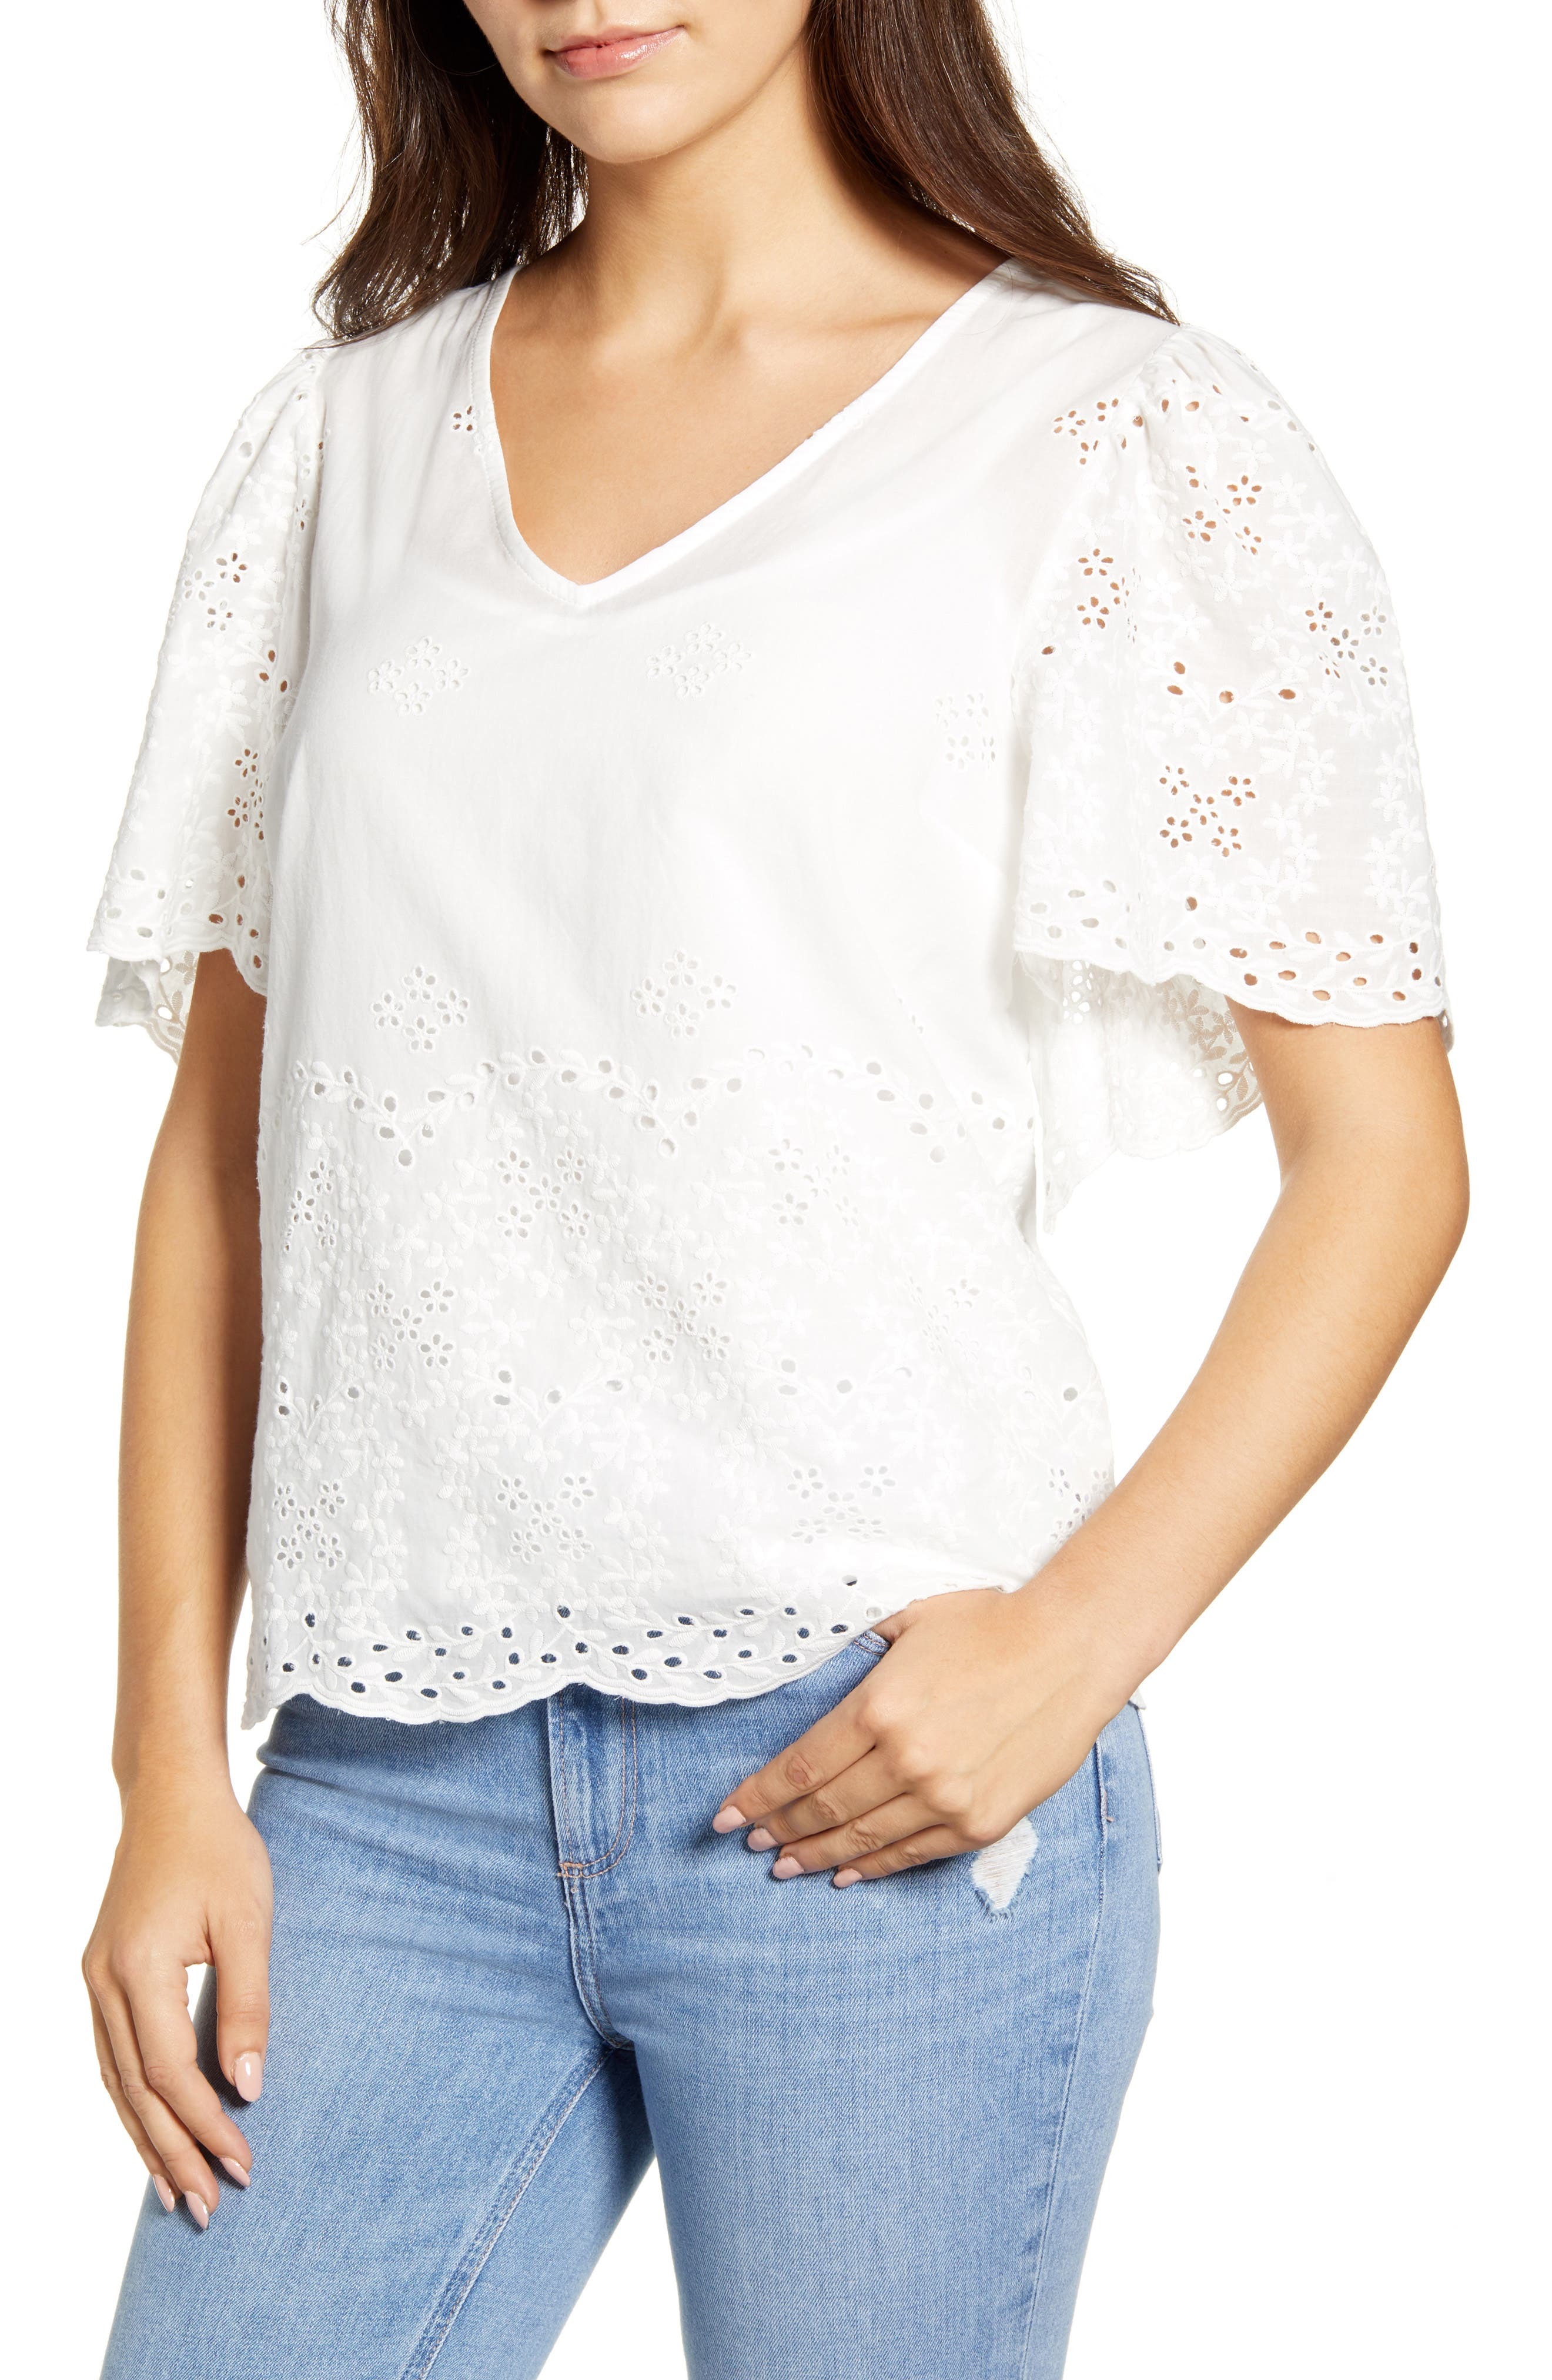 Charming eyelet adds romance to a cool V-neck top framed with fluttery sleeves and finished with a scalloped hem. Style Name: Bobeau Nyla Flutter Sleeve Cotton Eyelet Top. Style Number: 6030001. Available in stores.